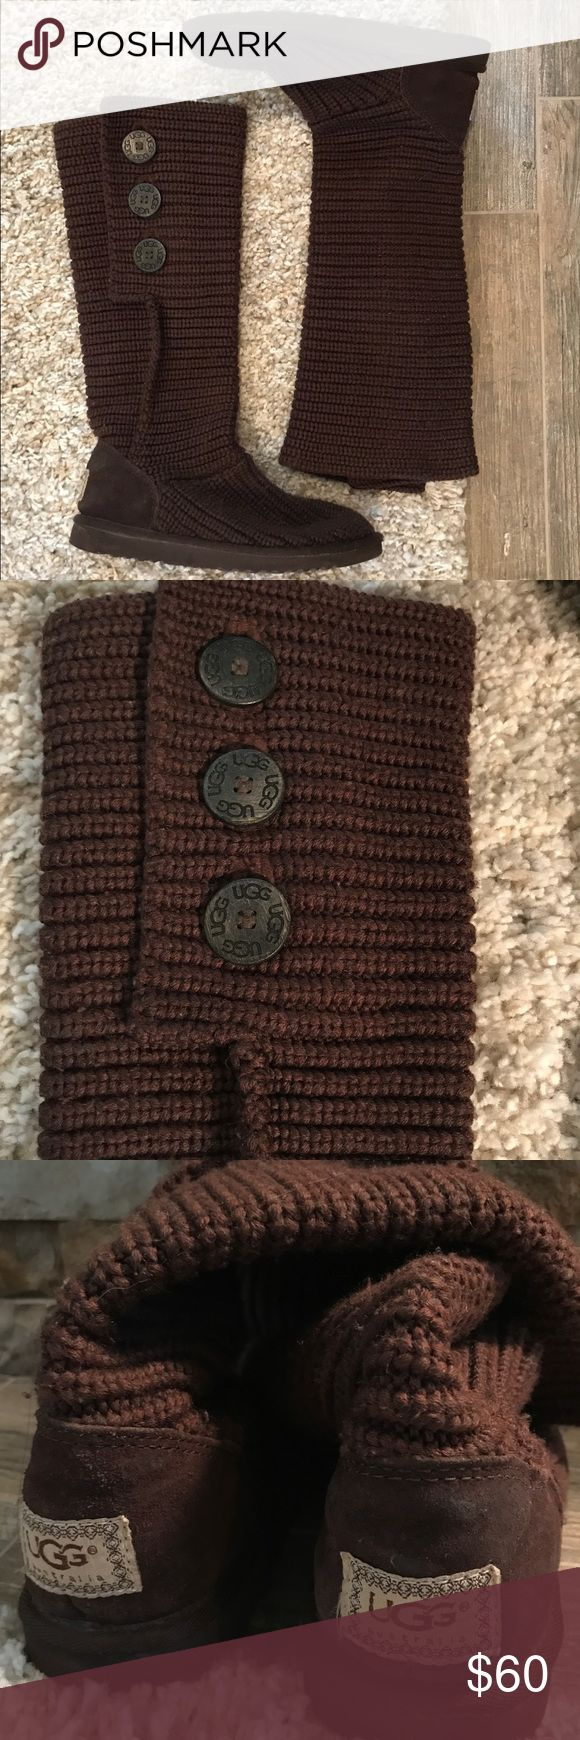 UGG Brown Cardy Knit Boots UGH classic Cardy boots in brown- knit material feels like a cozy winter sweater. Can be worn high or slouched, with 3 large buttons on side. Buttons are reversible to a smaller button giving the boot a new look when cuffed. Worn only 2 or 3 times. Ended up wearing my other pair more- does have some piling, especially on top of foot slight marking on back of right foot by logo. Shaft of boot uncuffed is 14.5'. These are a size 6 and I typically wear a 6.5/7 UGG…